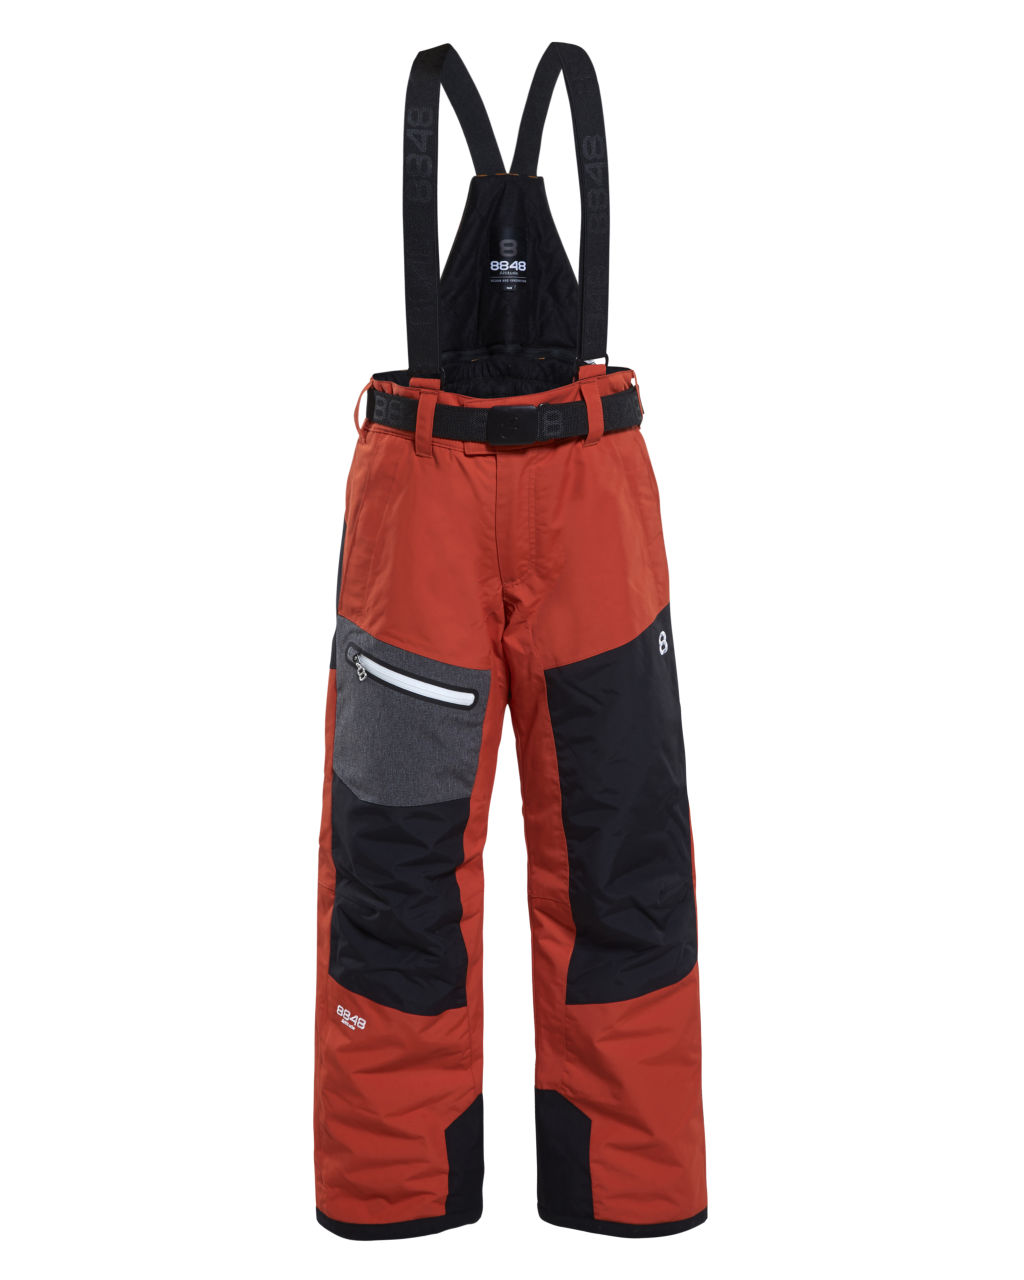 8848 Altitude Defender Pants Jr